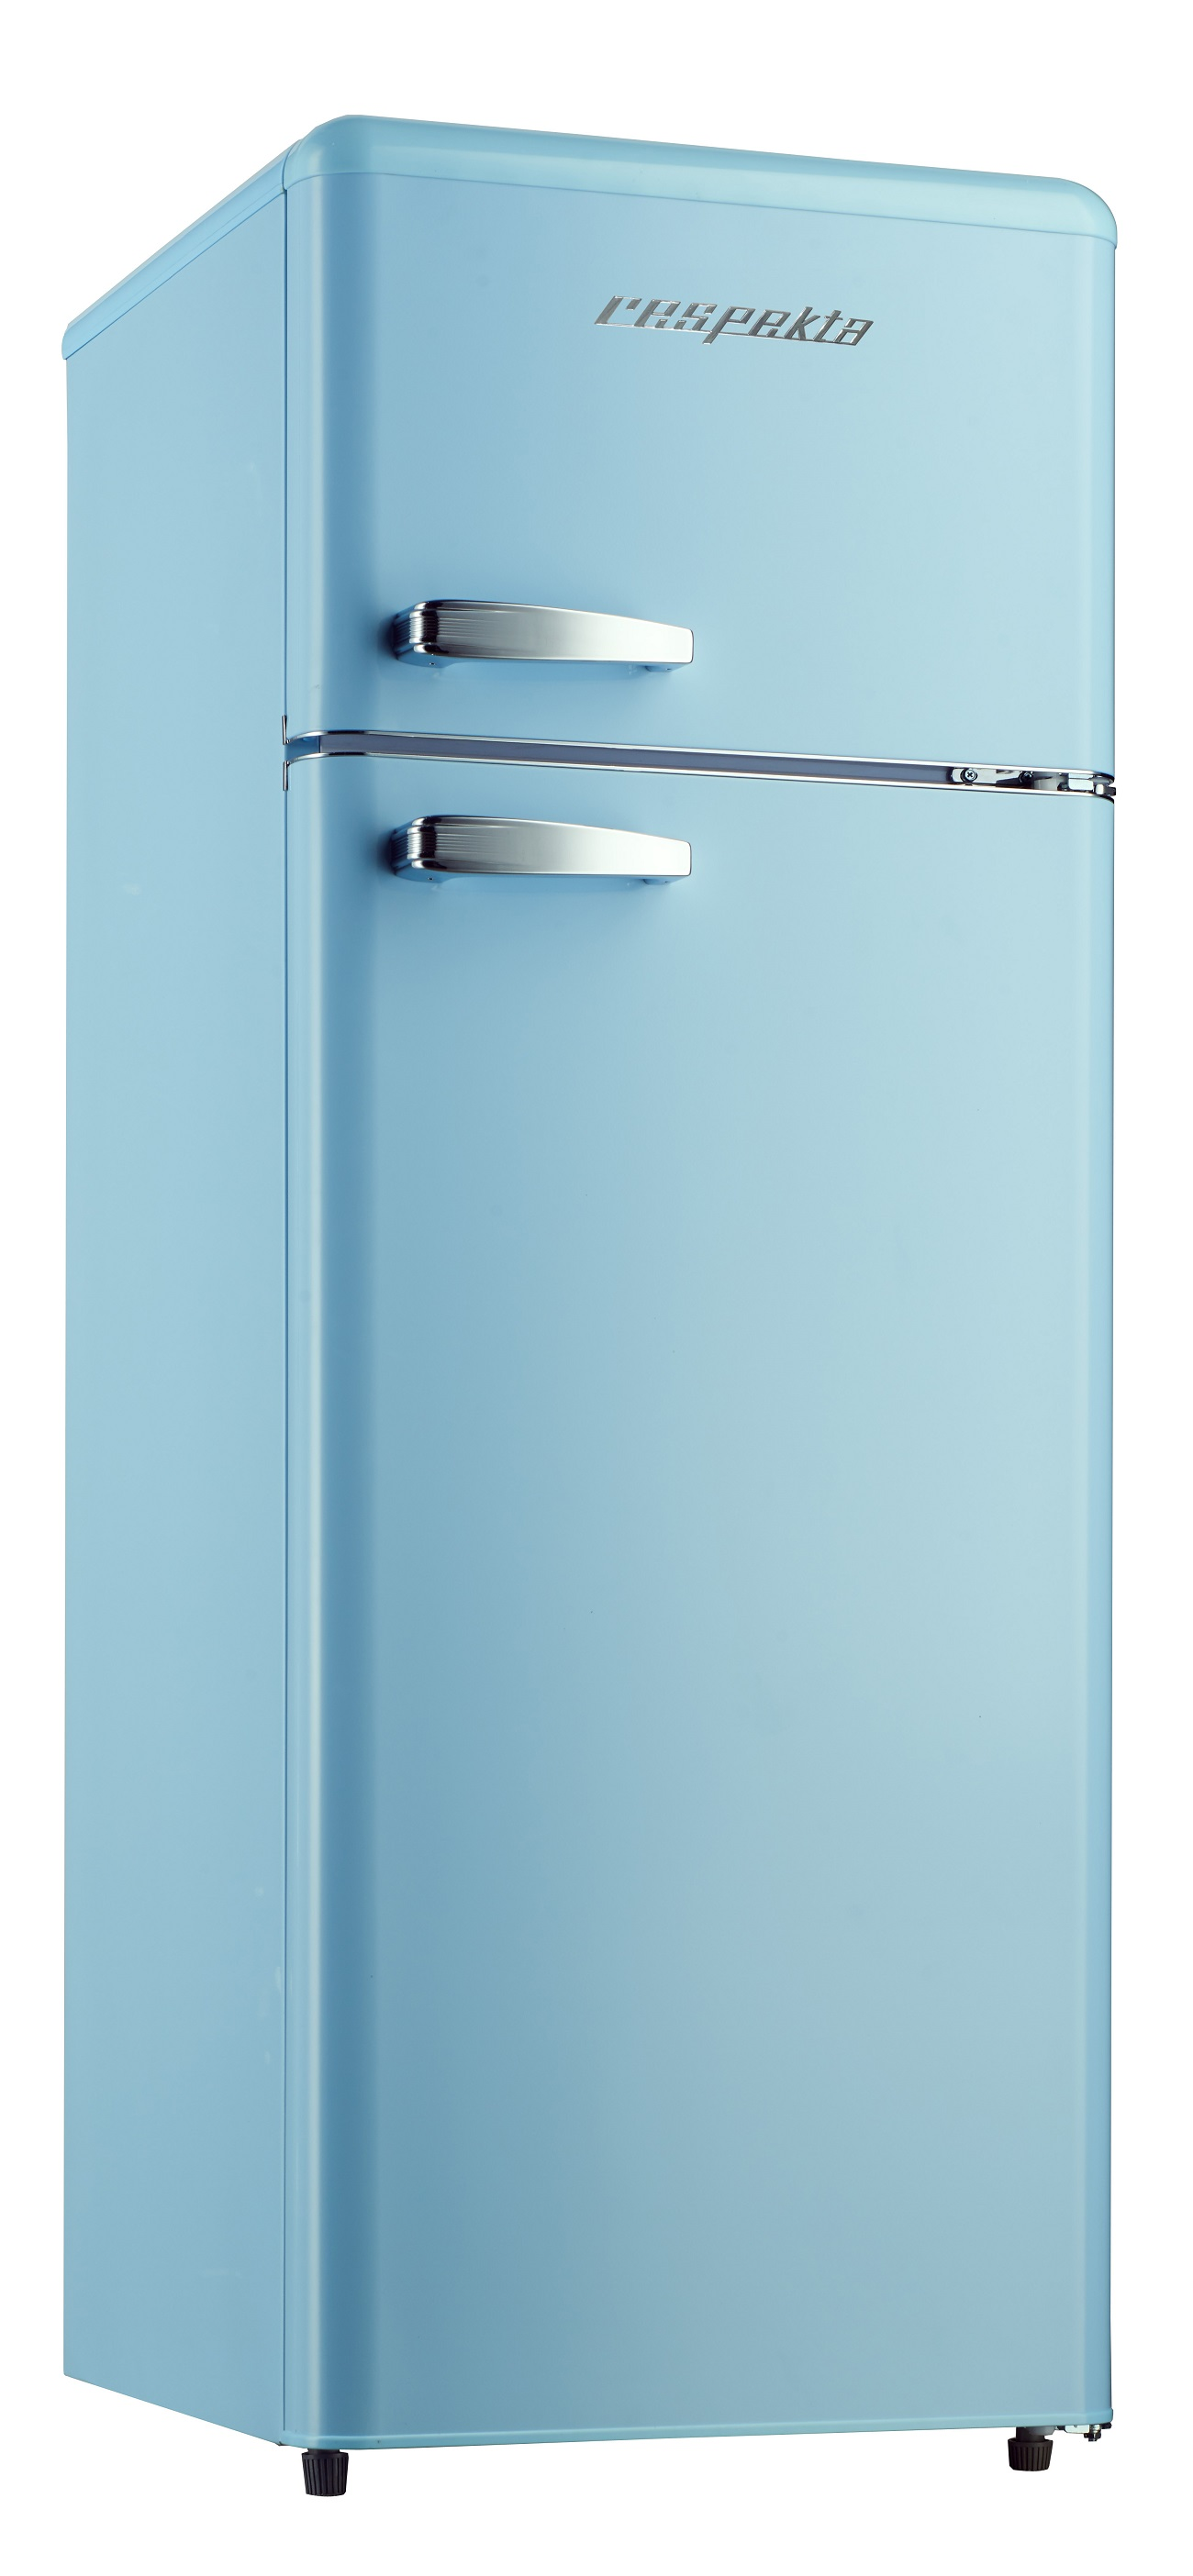 respekta retro refrigerator kombi cooling frozen combination kg 146 light blue. Black Bedroom Furniture Sets. Home Design Ideas